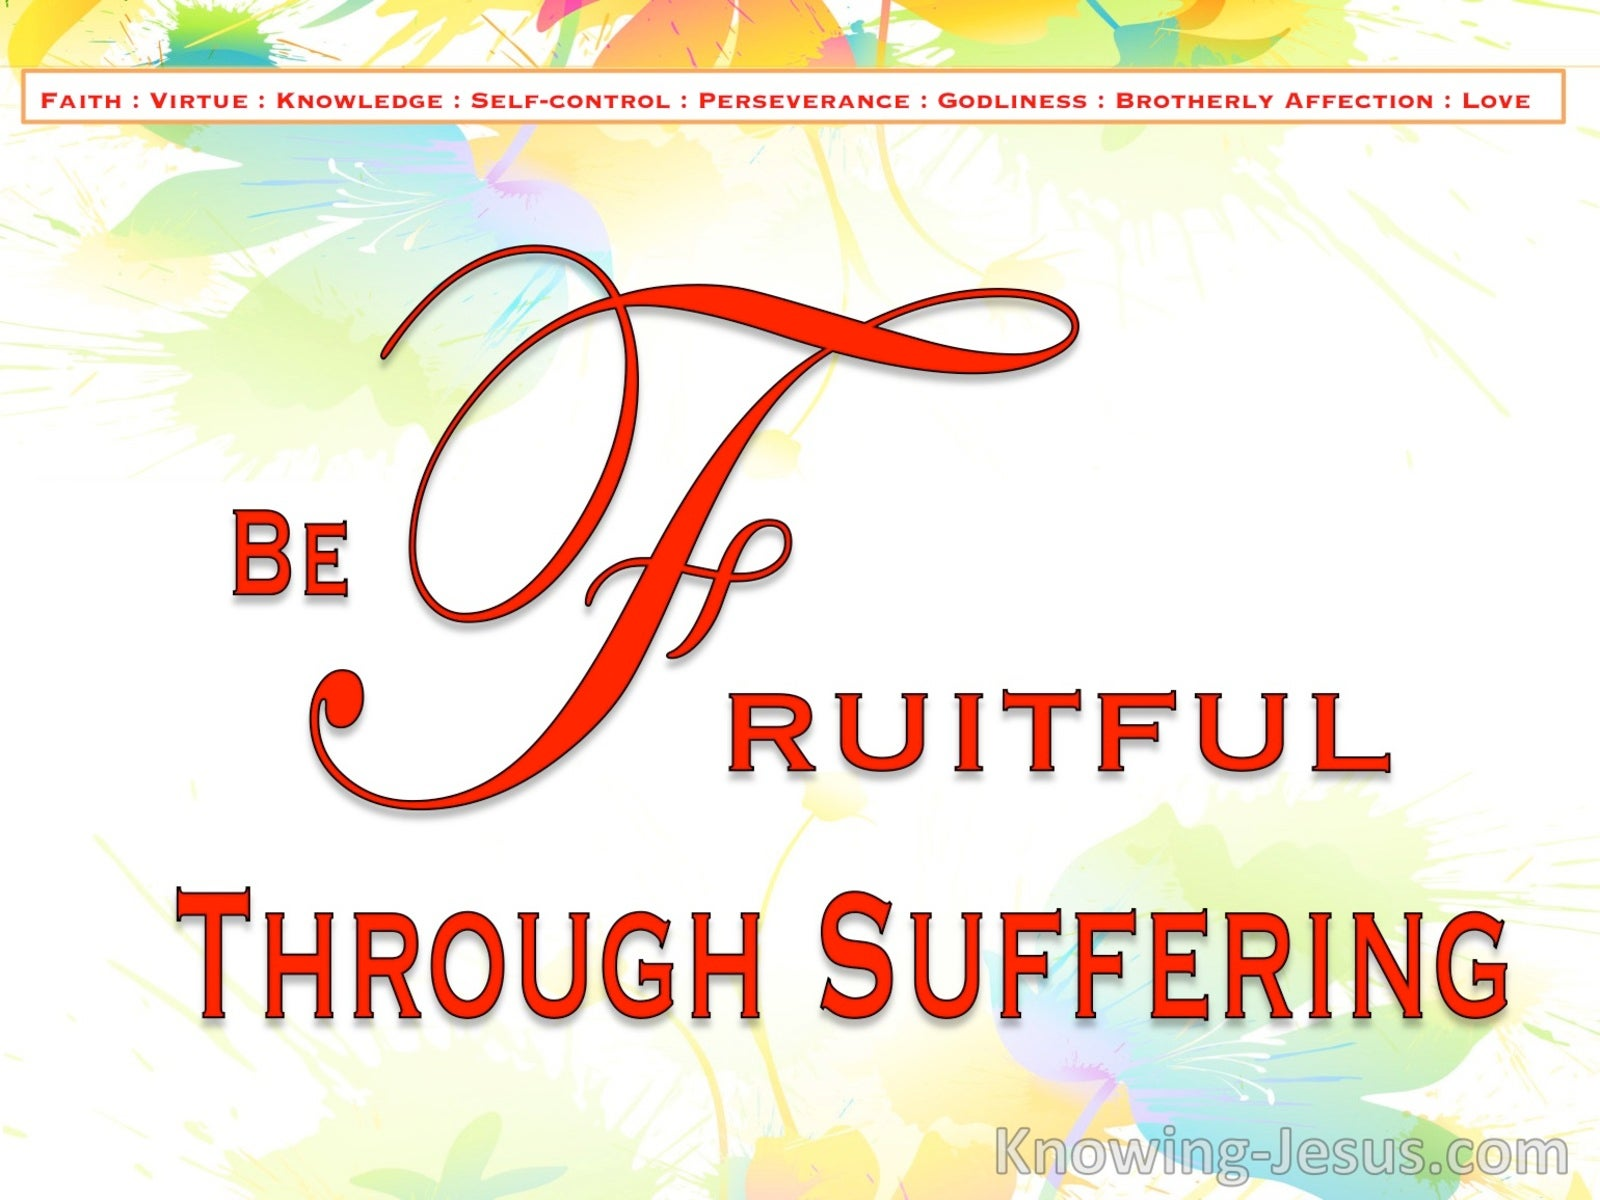 1 Peter 1:8 Be Fruitful Through Suffering (devotional)02:22 (red)